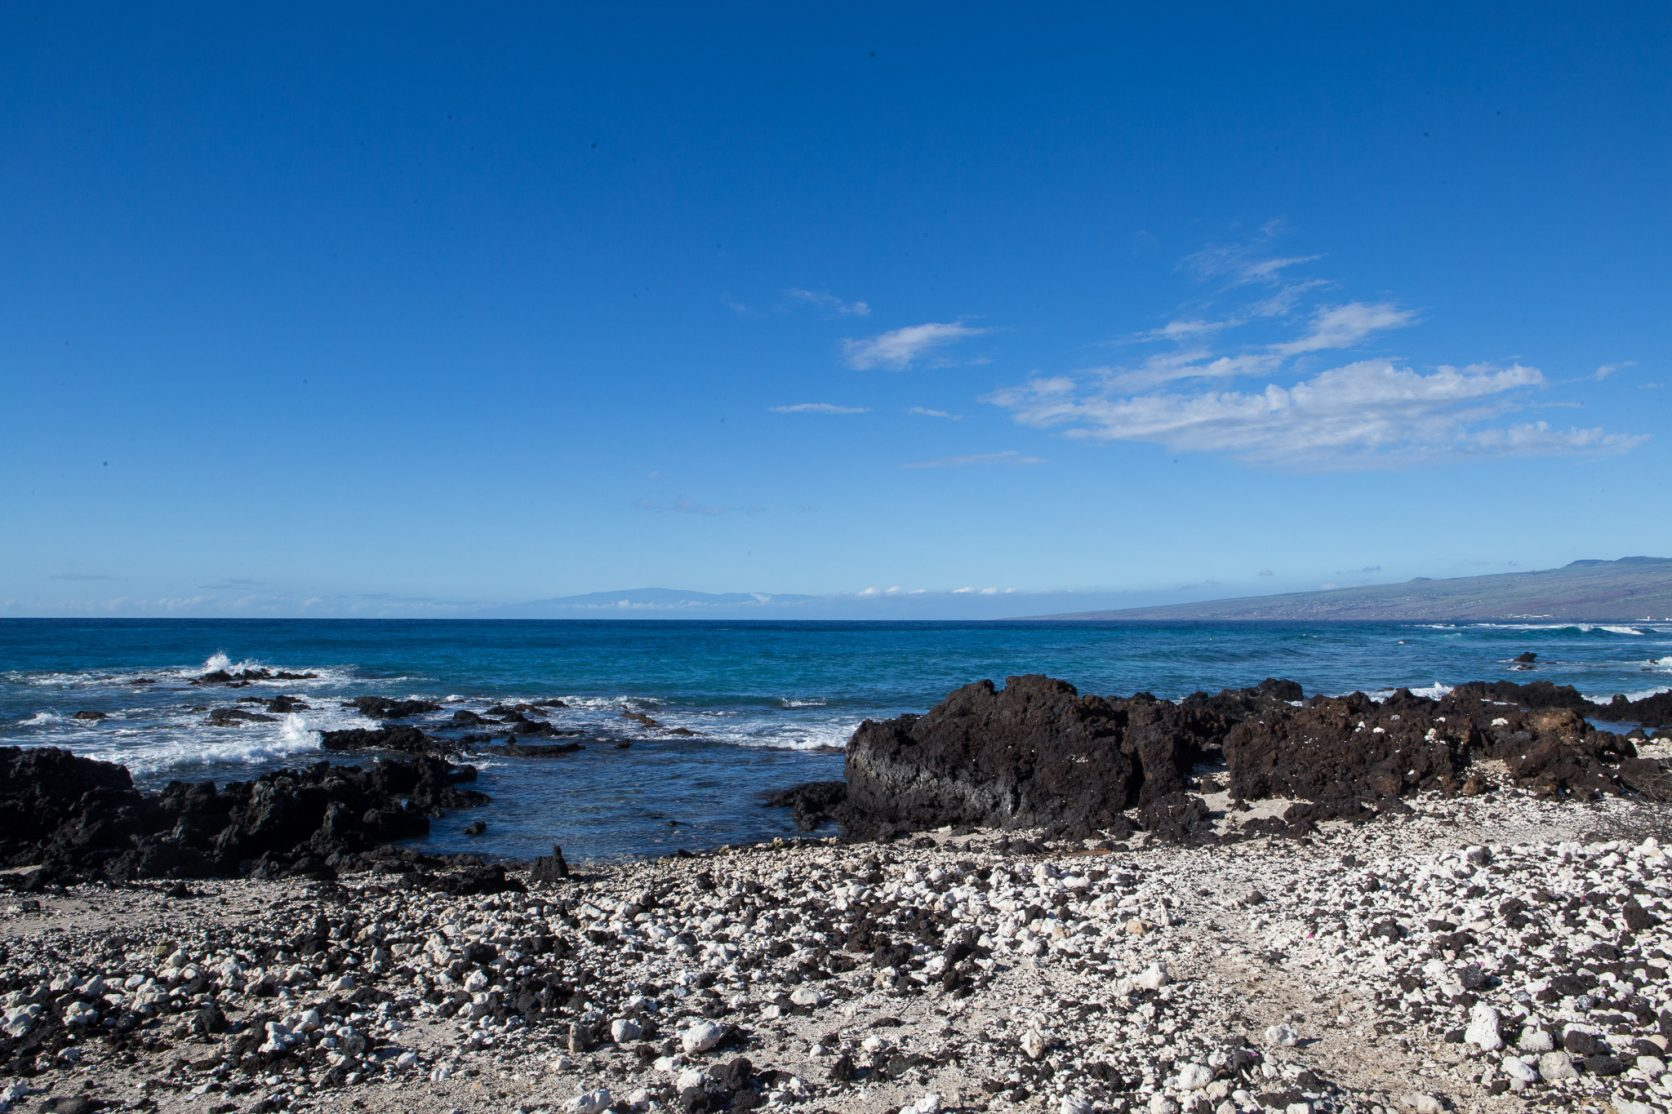 Holoholokai Beach - Kailua-Kona hawaii location big island photographer